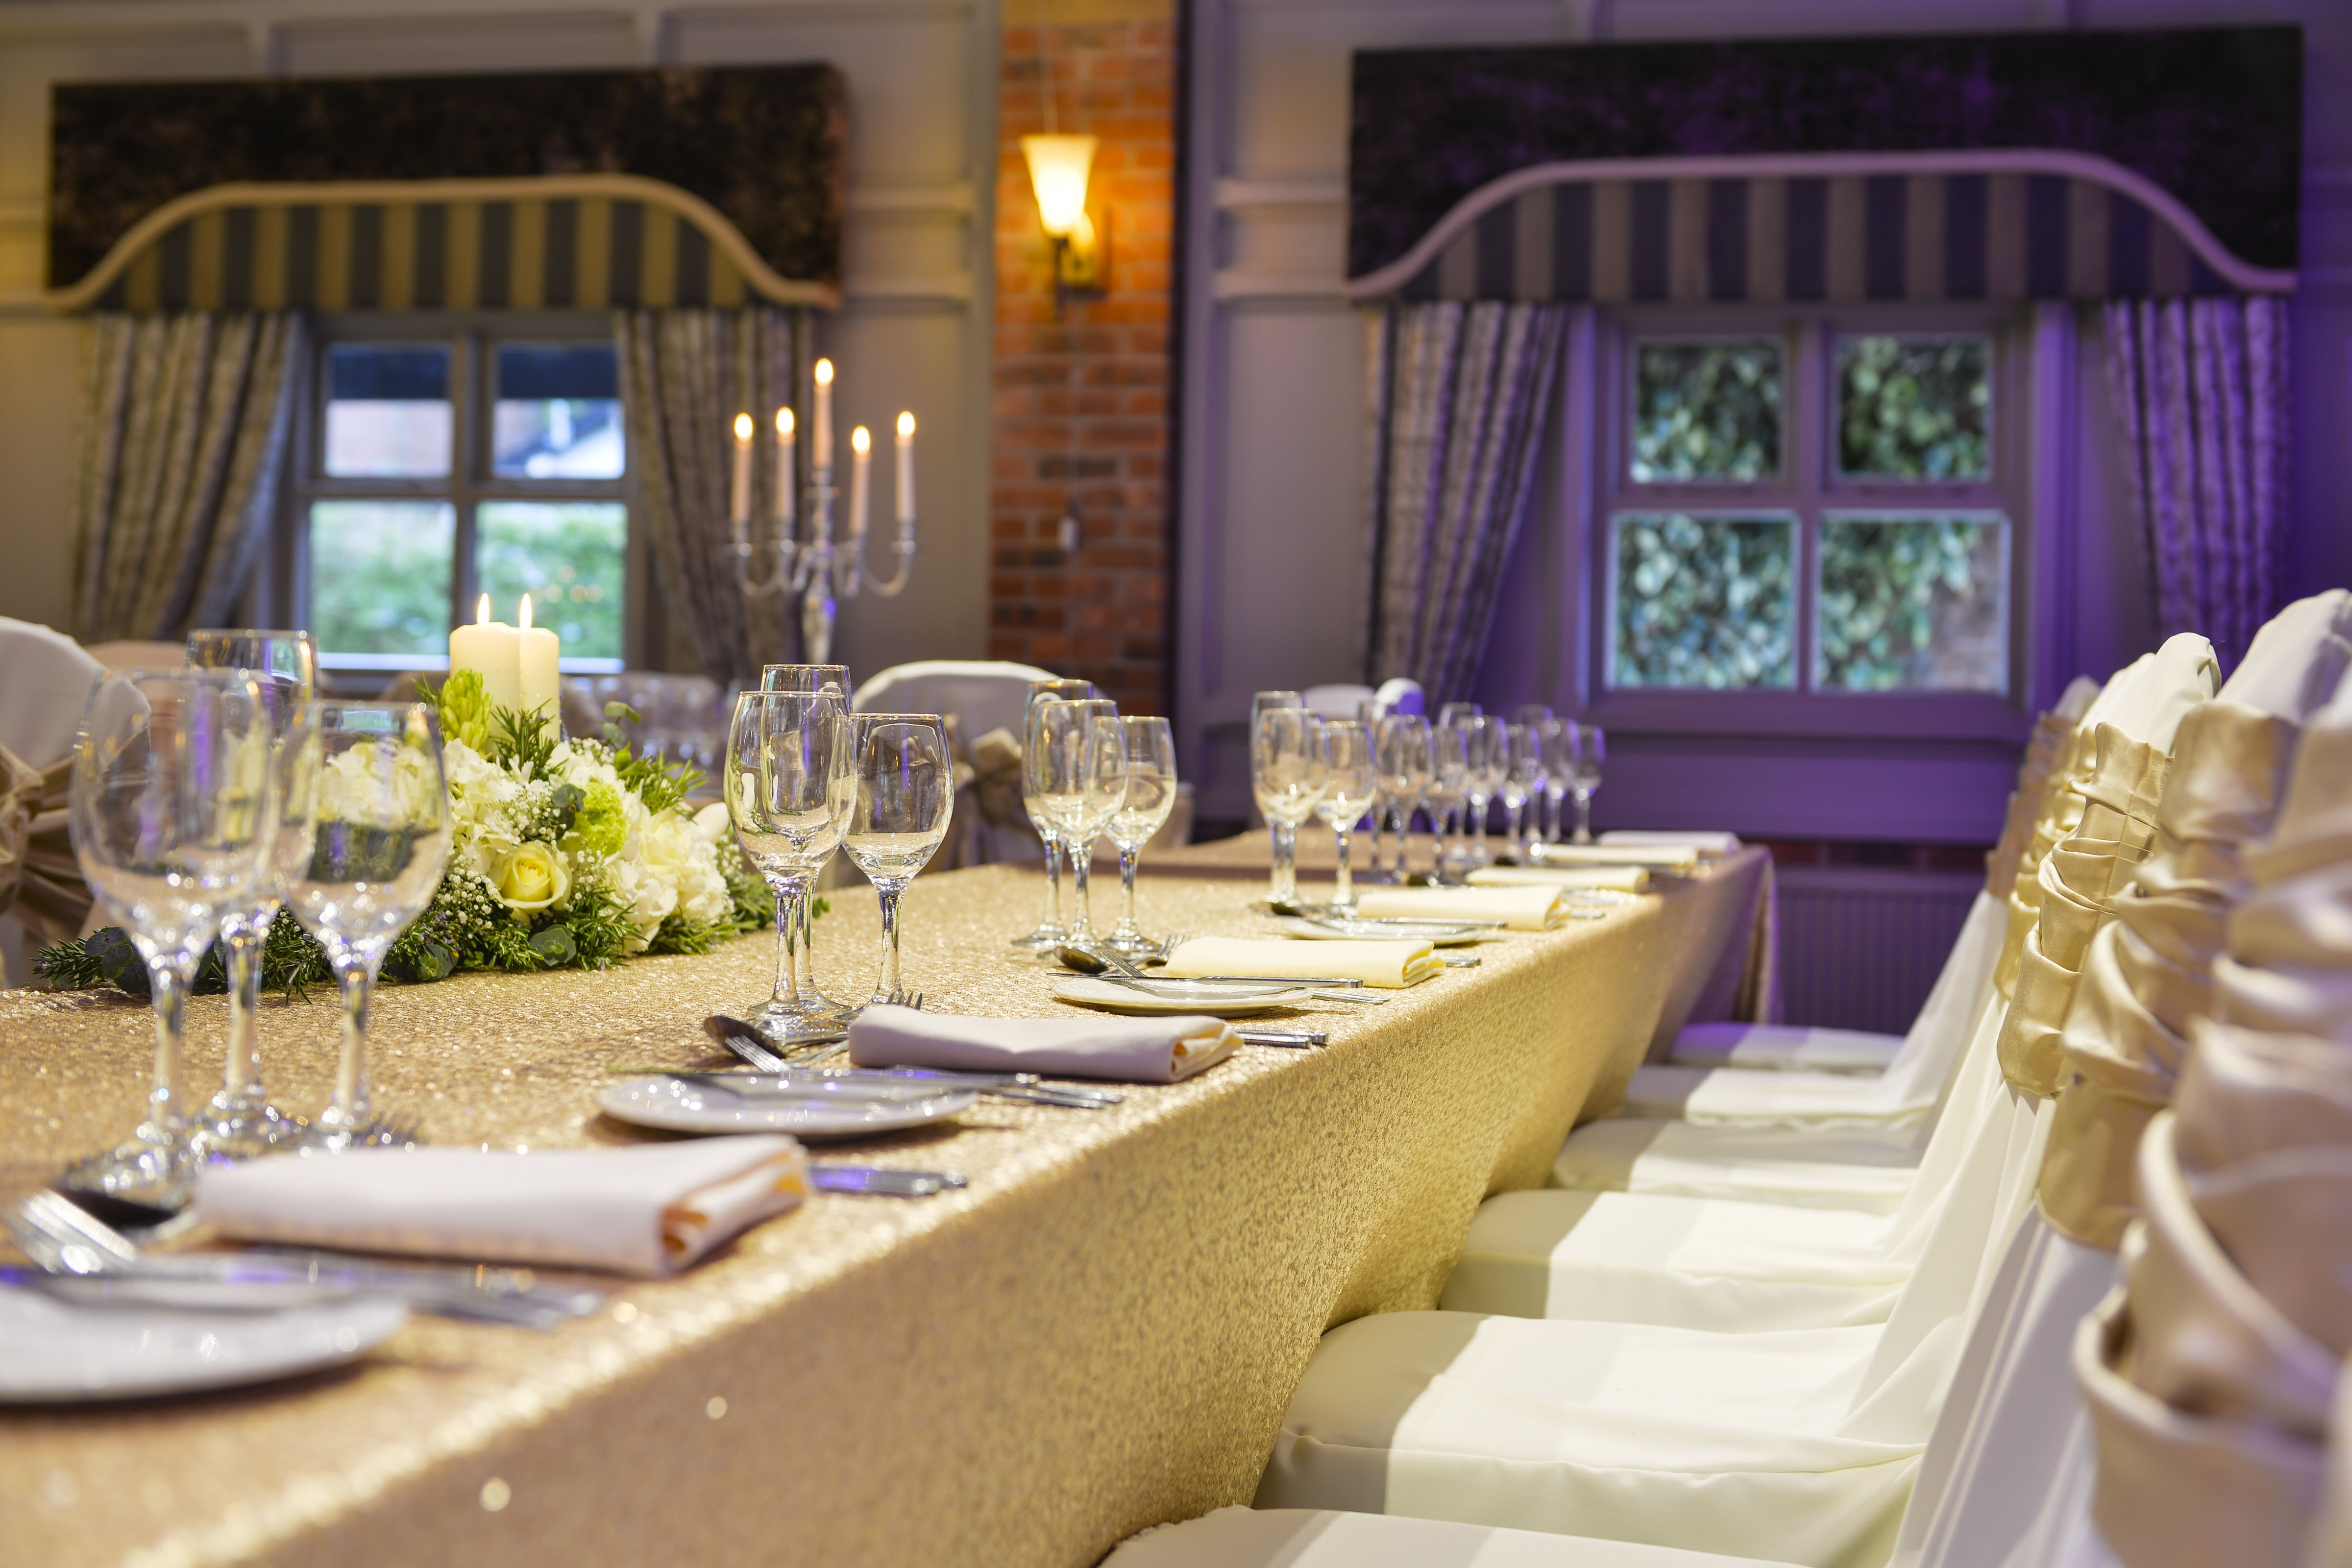 an angled shot of a head table at a wedding decorated with a lovely bouquet of flowers glasses and cutlery